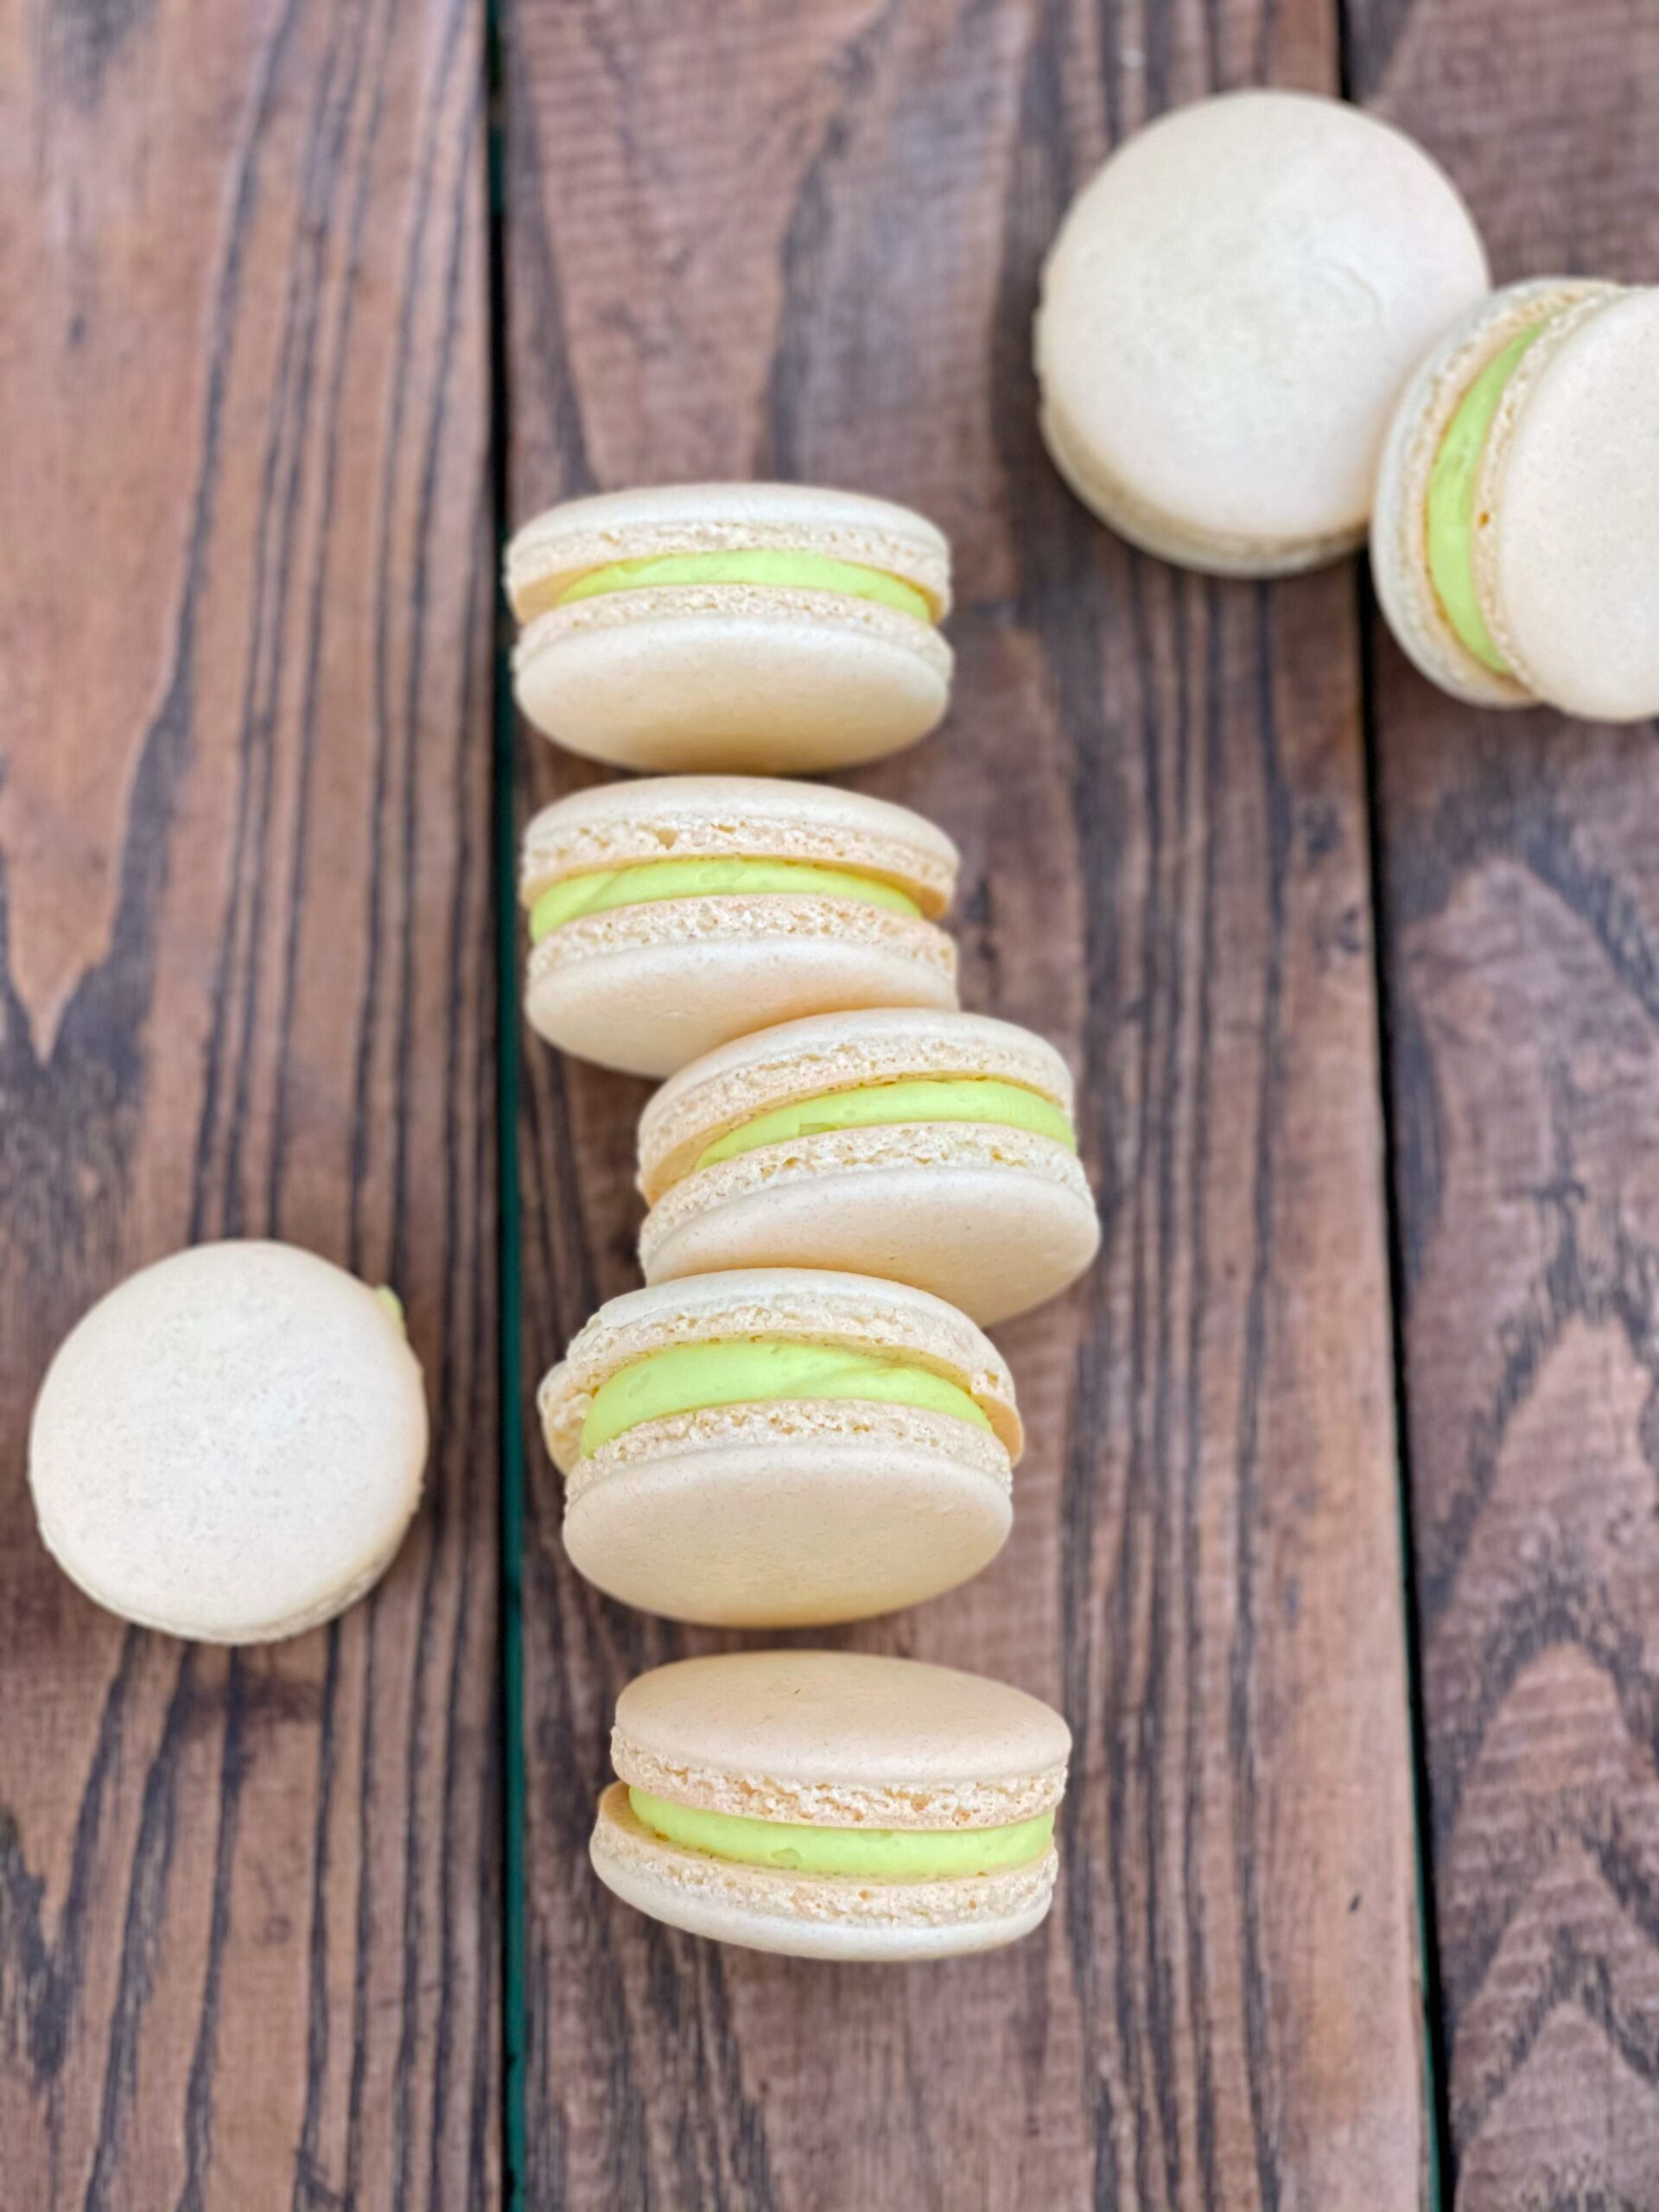 french macarons with green filling